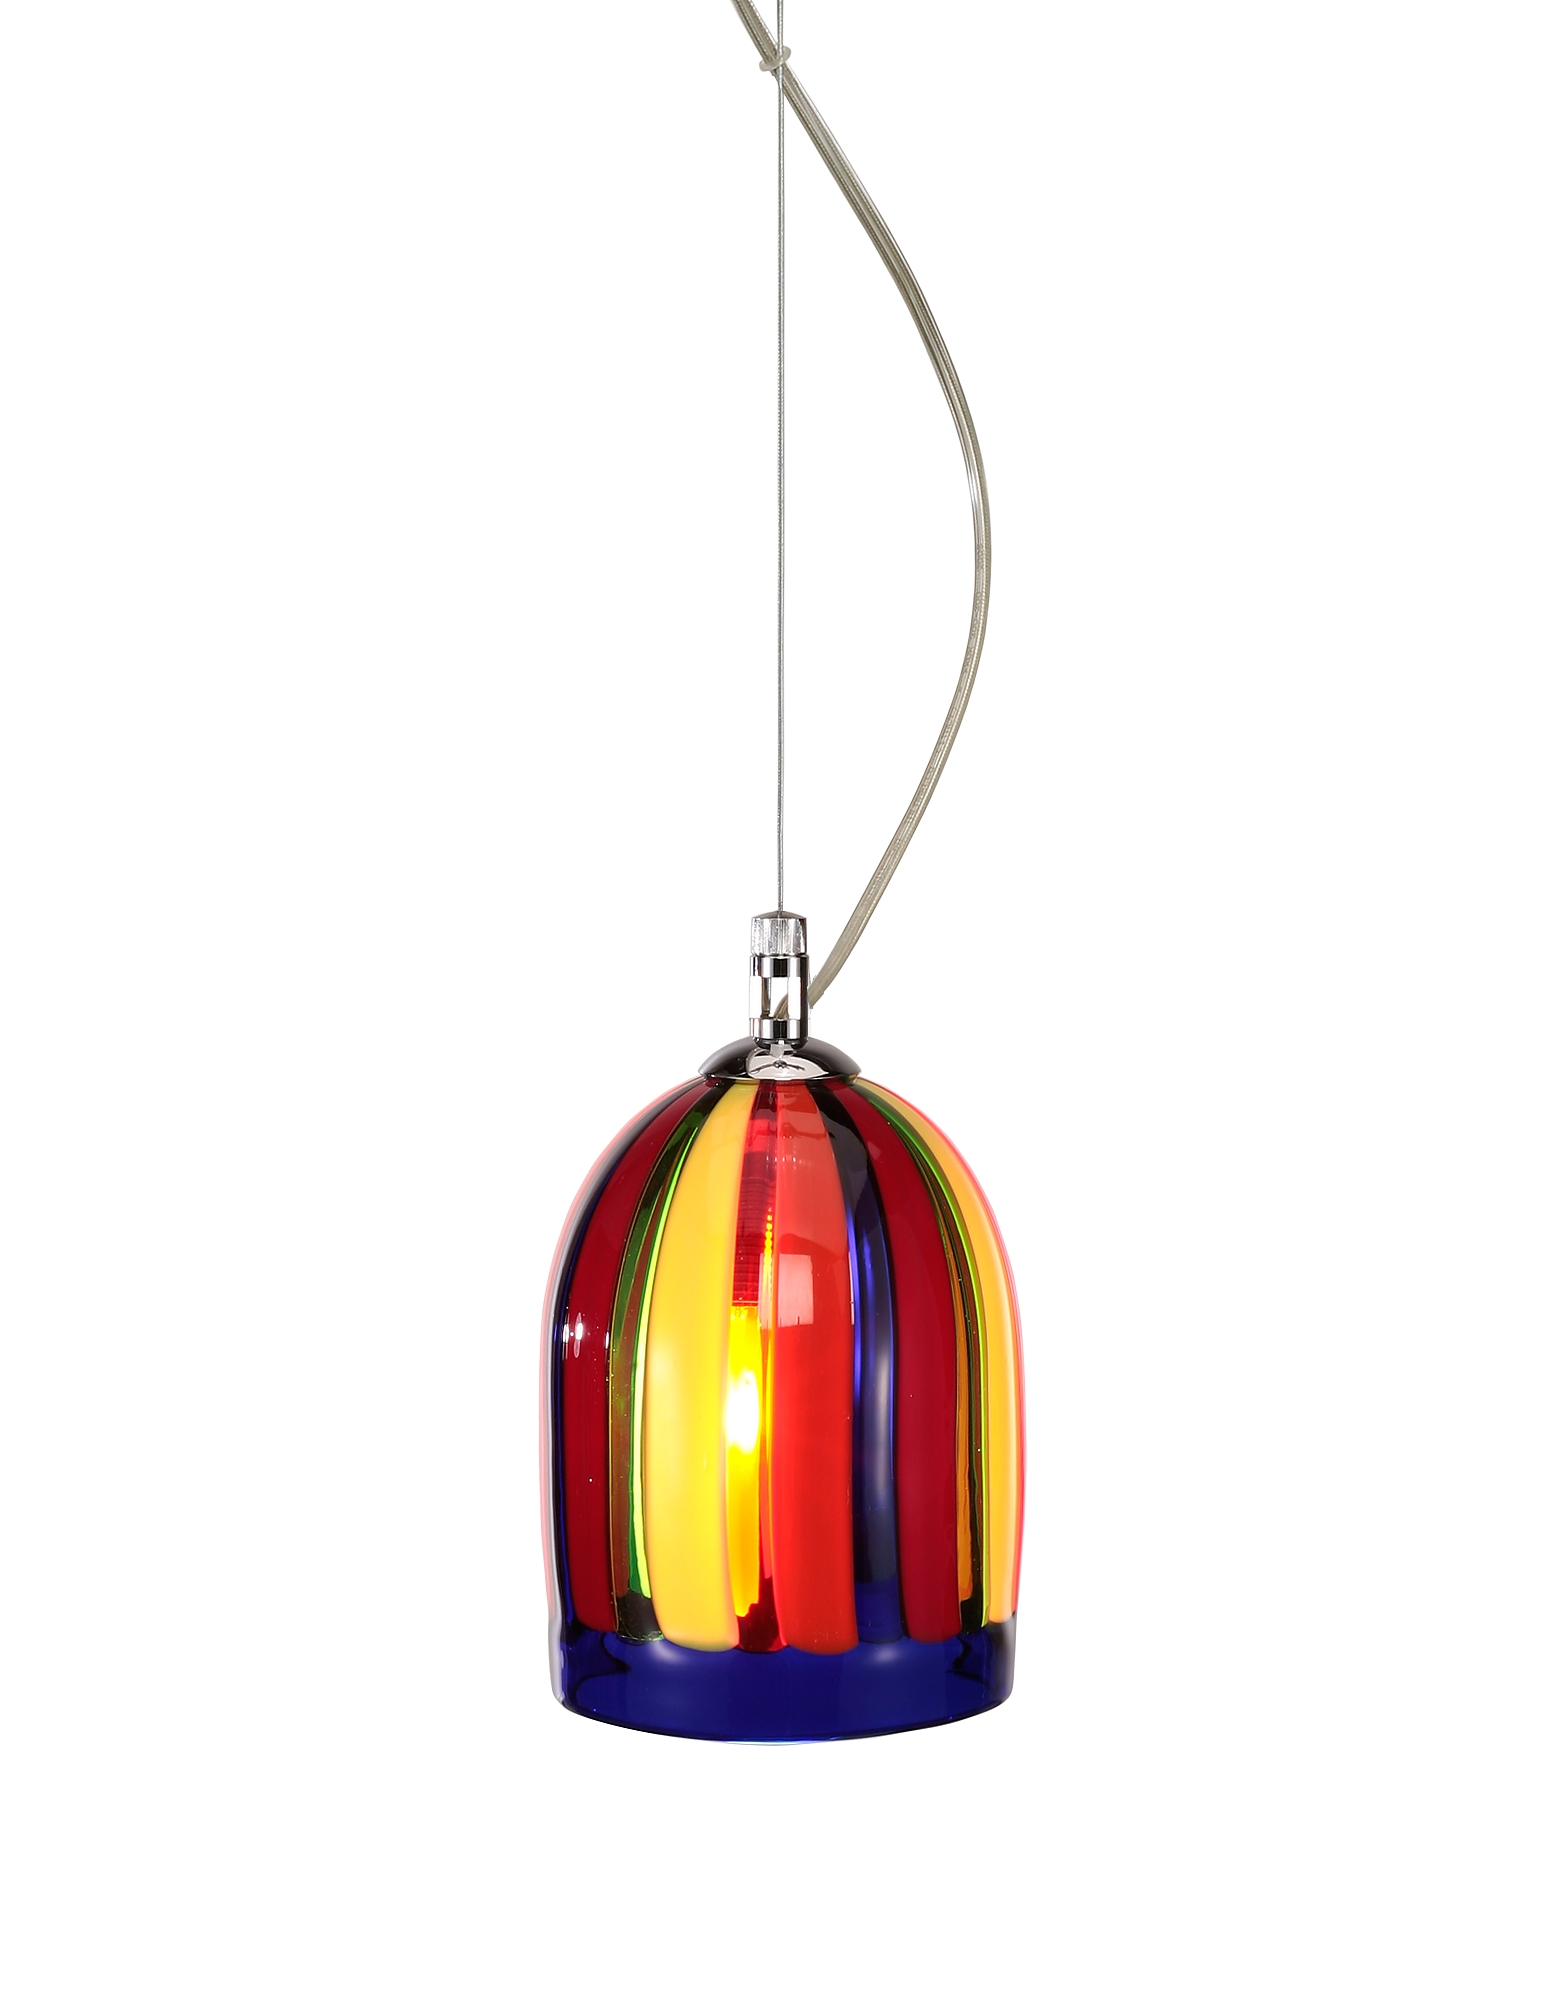 Voltolina Designer Decor & Lighting, Eleganza - Multicolor Murano Handmade Glass Pendant Lamp